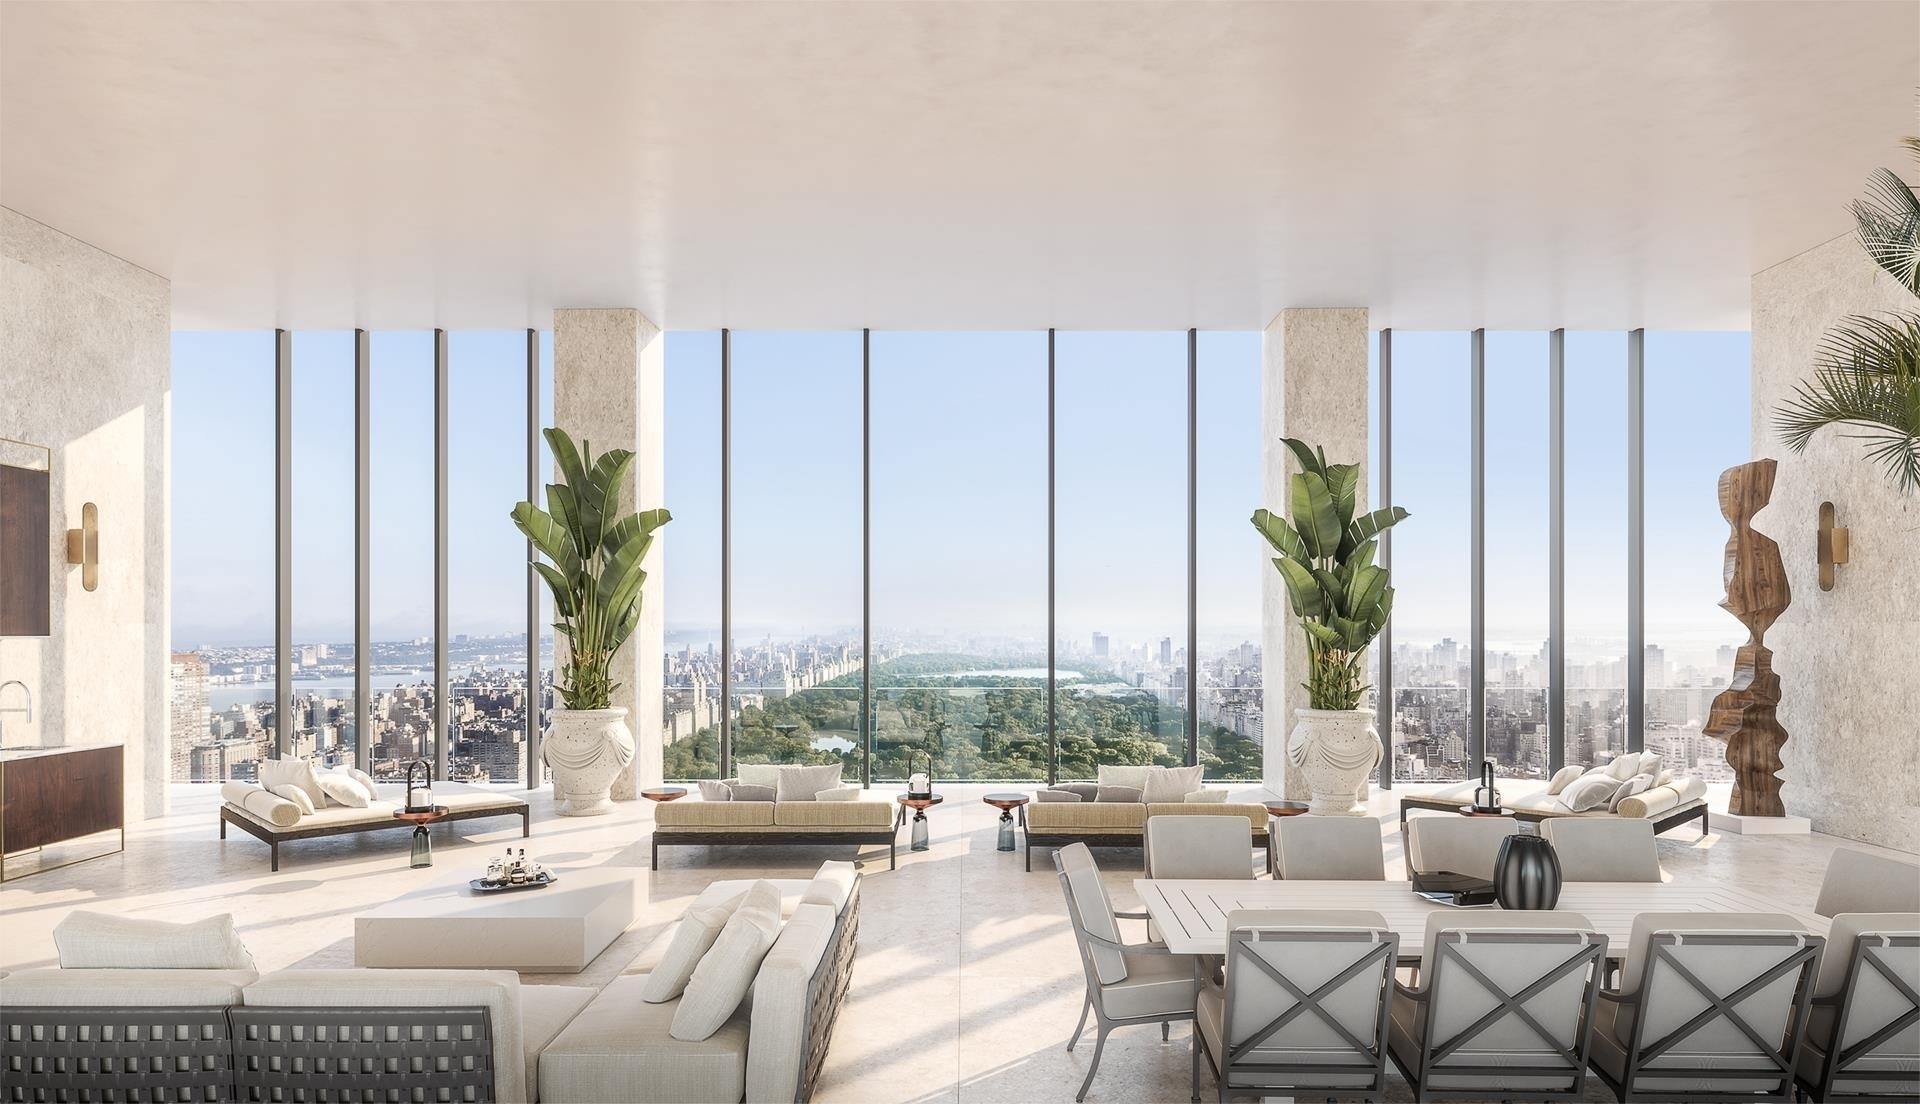 Property en 111 W 57TH ST , PH72 Midtown West, New York, NY 10019